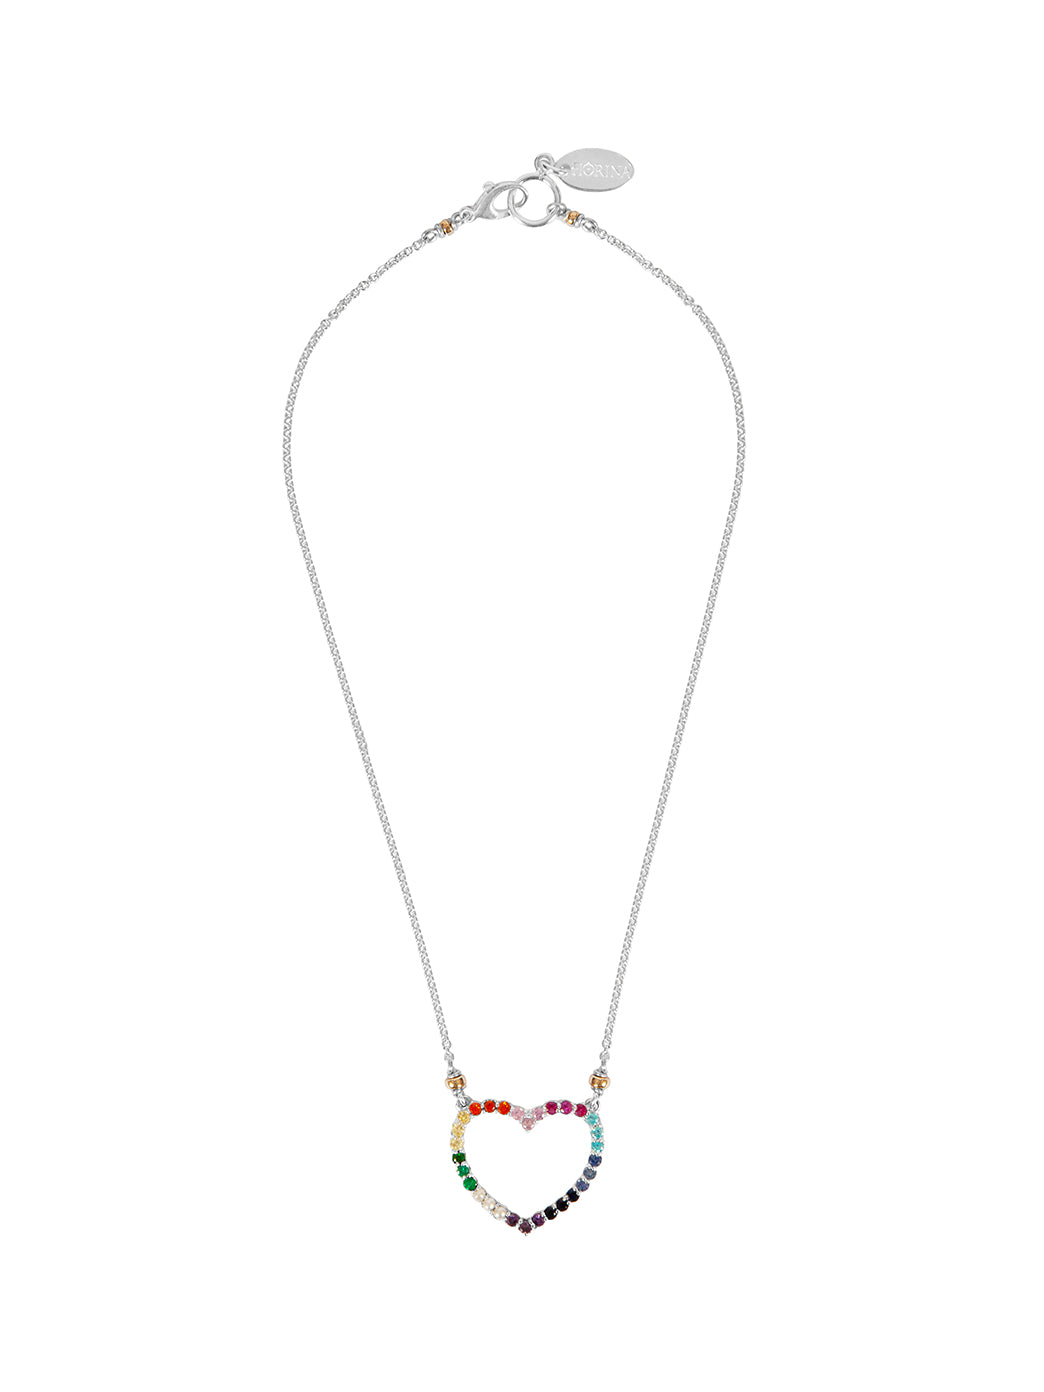 Fiorina Jewellery Heart Love Necklace Chakra